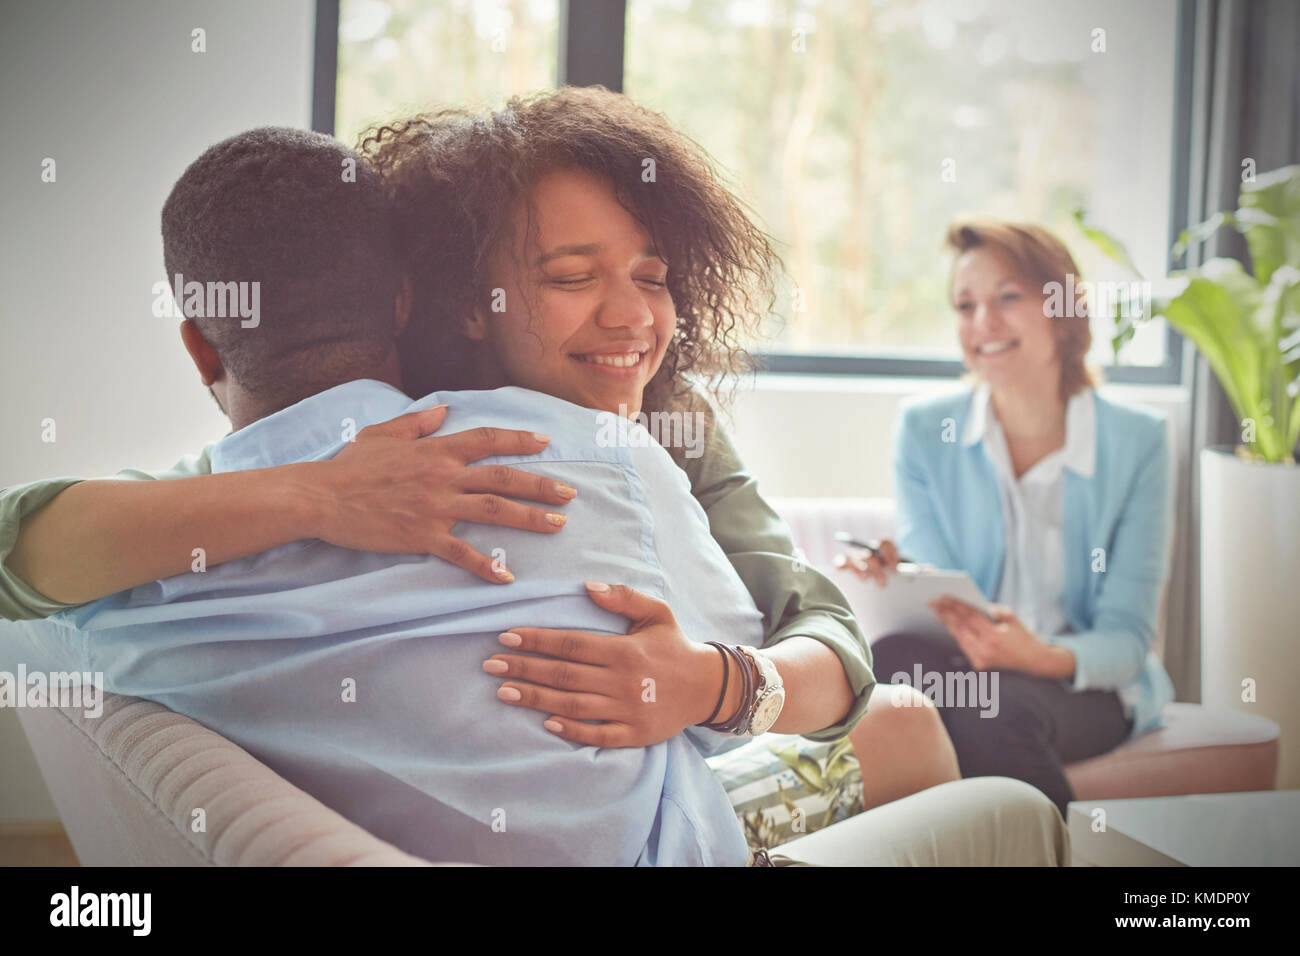 Smiling female therapist watching couple hugging in couples therapy session - Stock Image